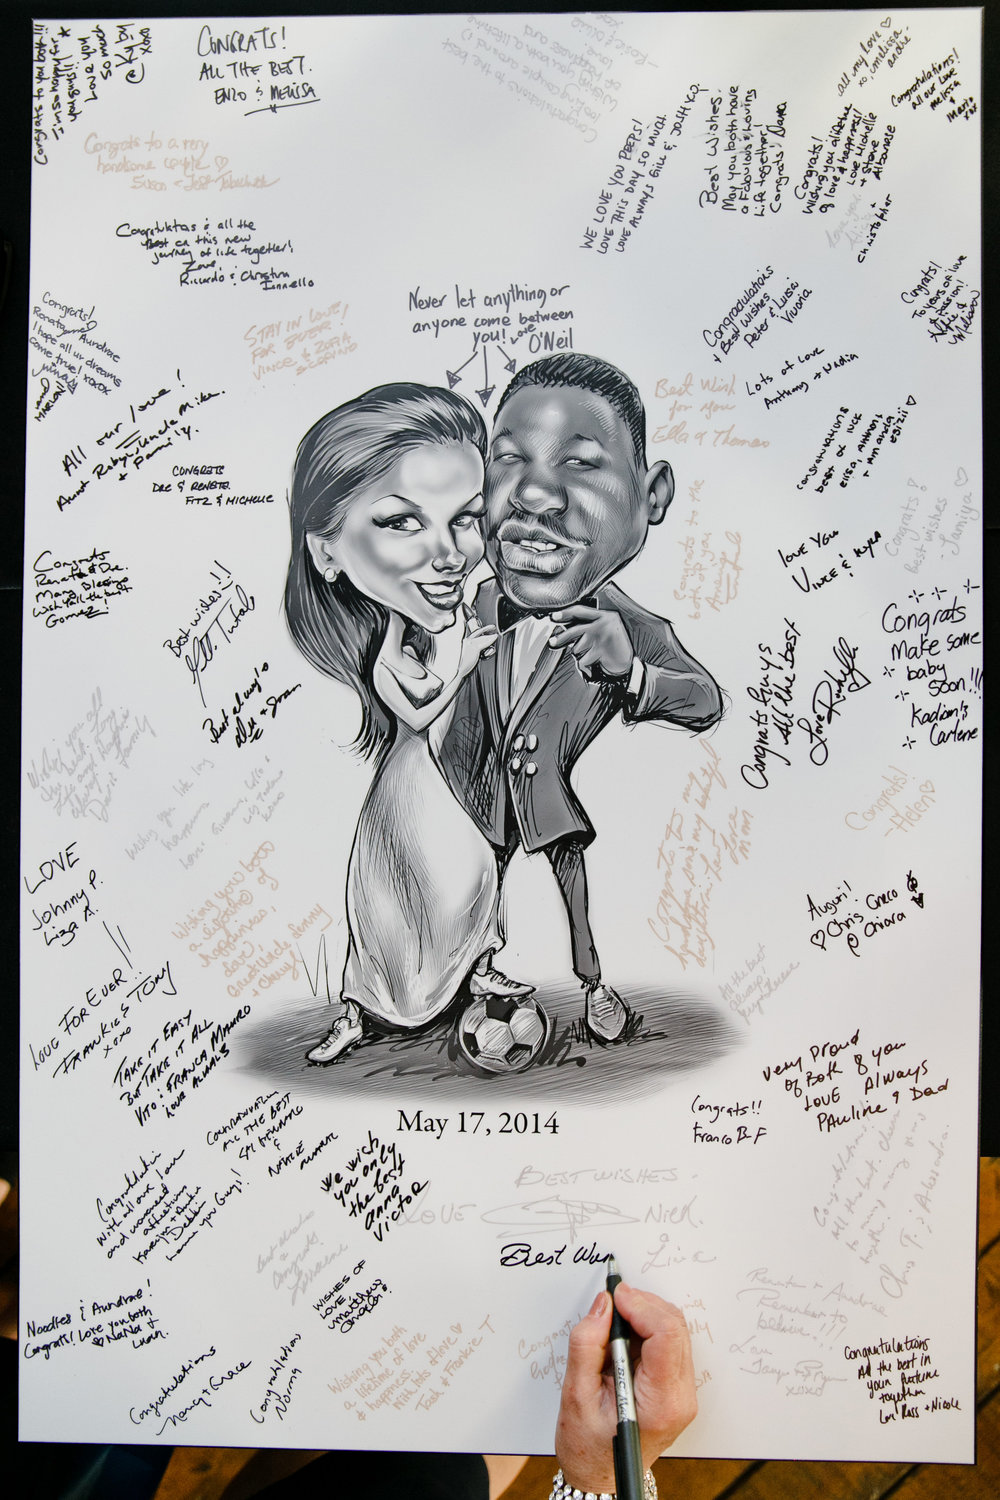 A caricature guestbook!  This is a fun alternative to the traditional guestbook for guests to leave a special note. (Personalize it even more by adding elements that reflect you, ahem, soccer lovers!)  Photo: Boyfriend/Girlfriend